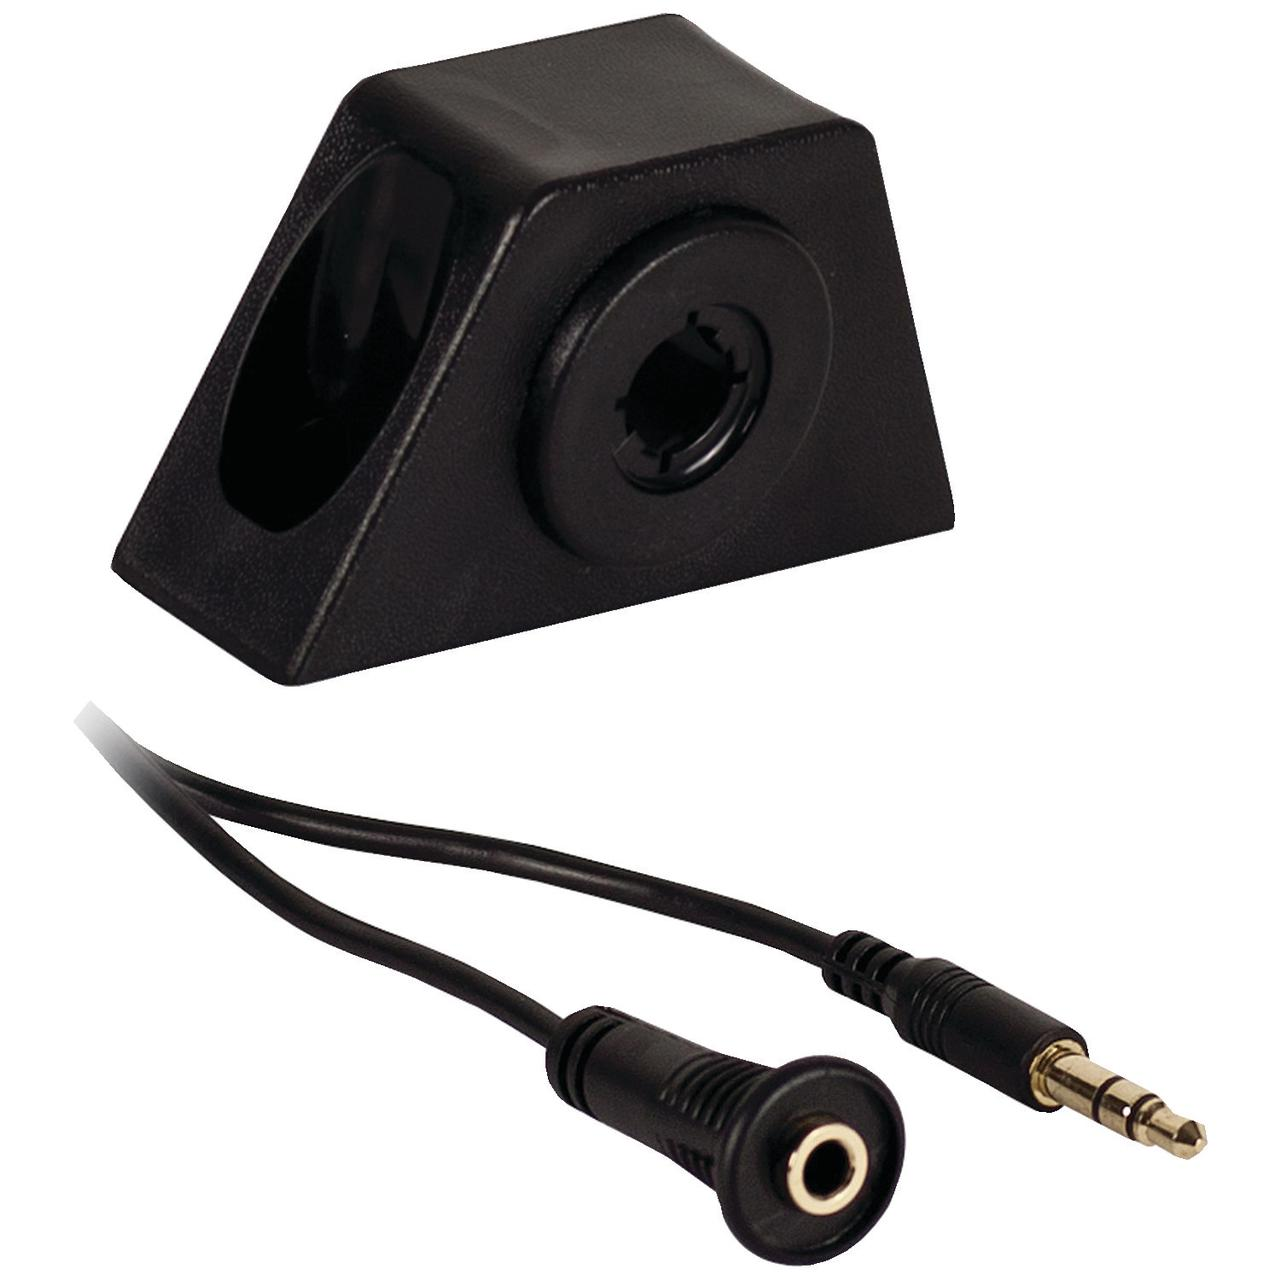 Axxess AX-FM35EXTCB Male To Female 3.5mm Cable With Mount